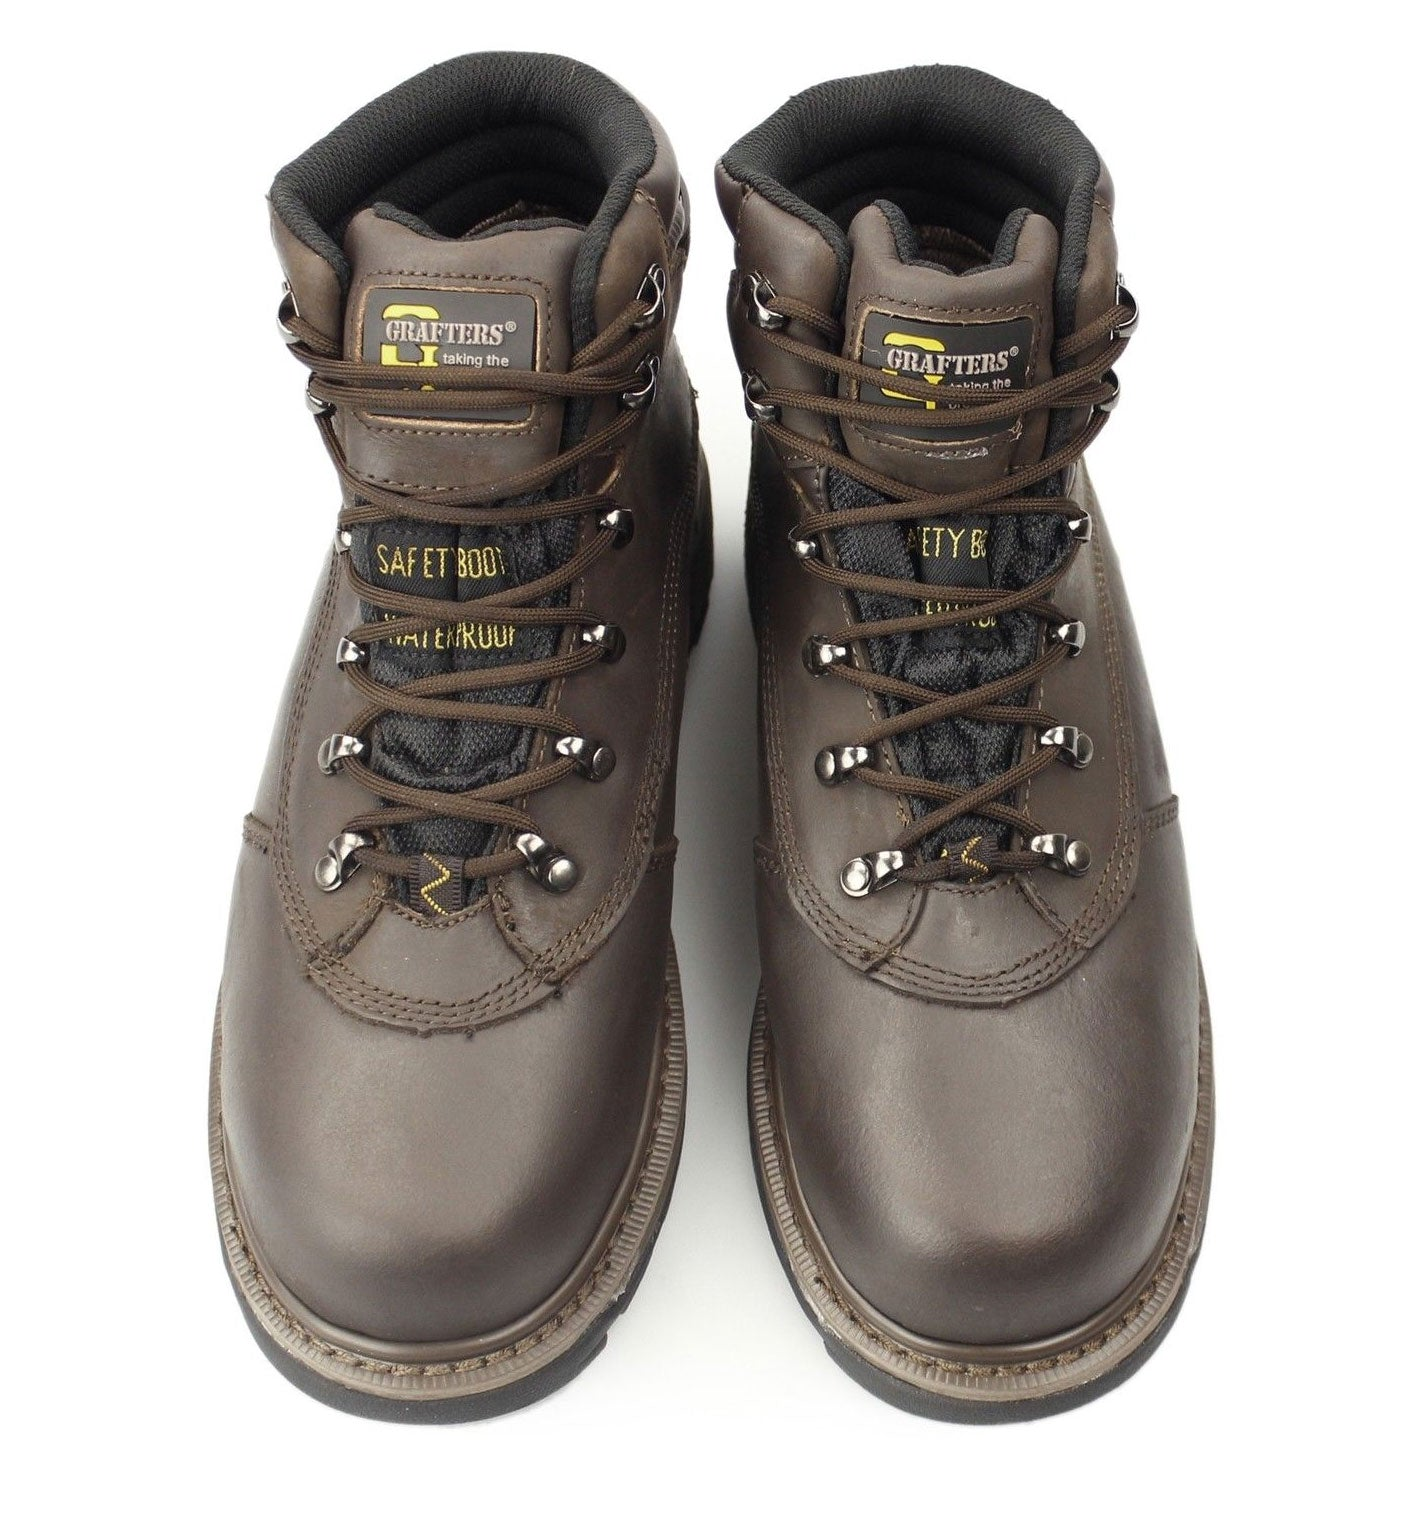 waterproof work boots grafters